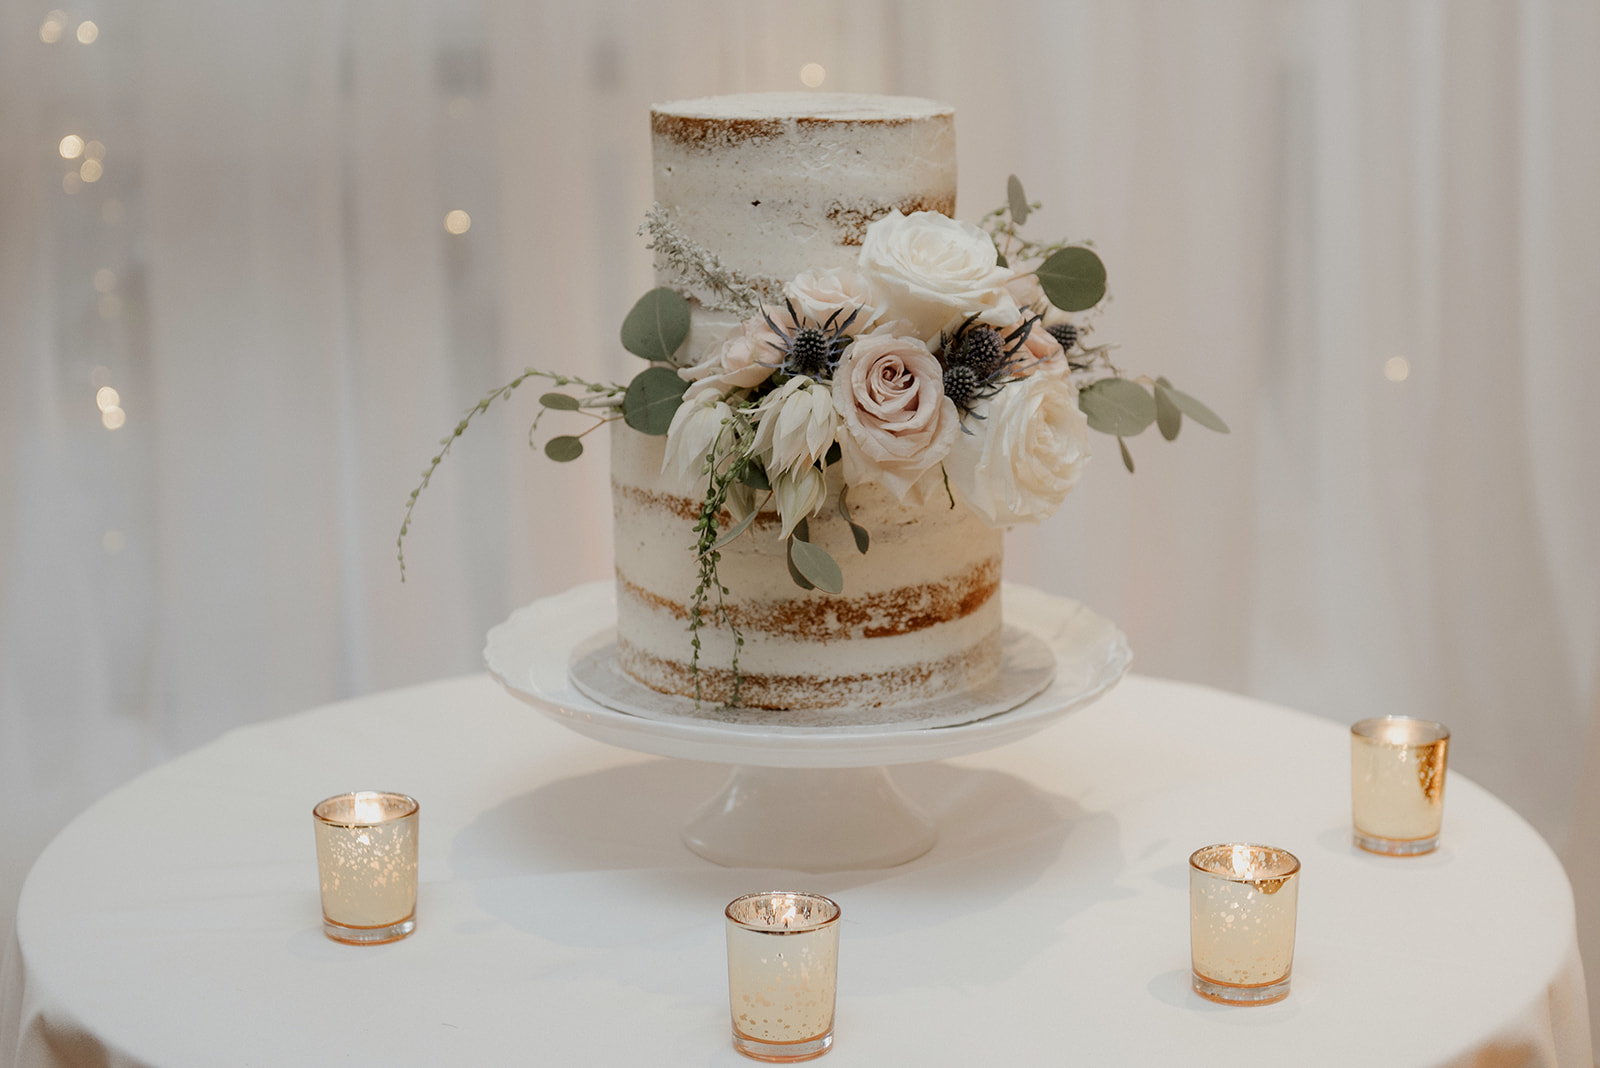 Wedding Cake with white flowers by Sage at UBC in Vancouver